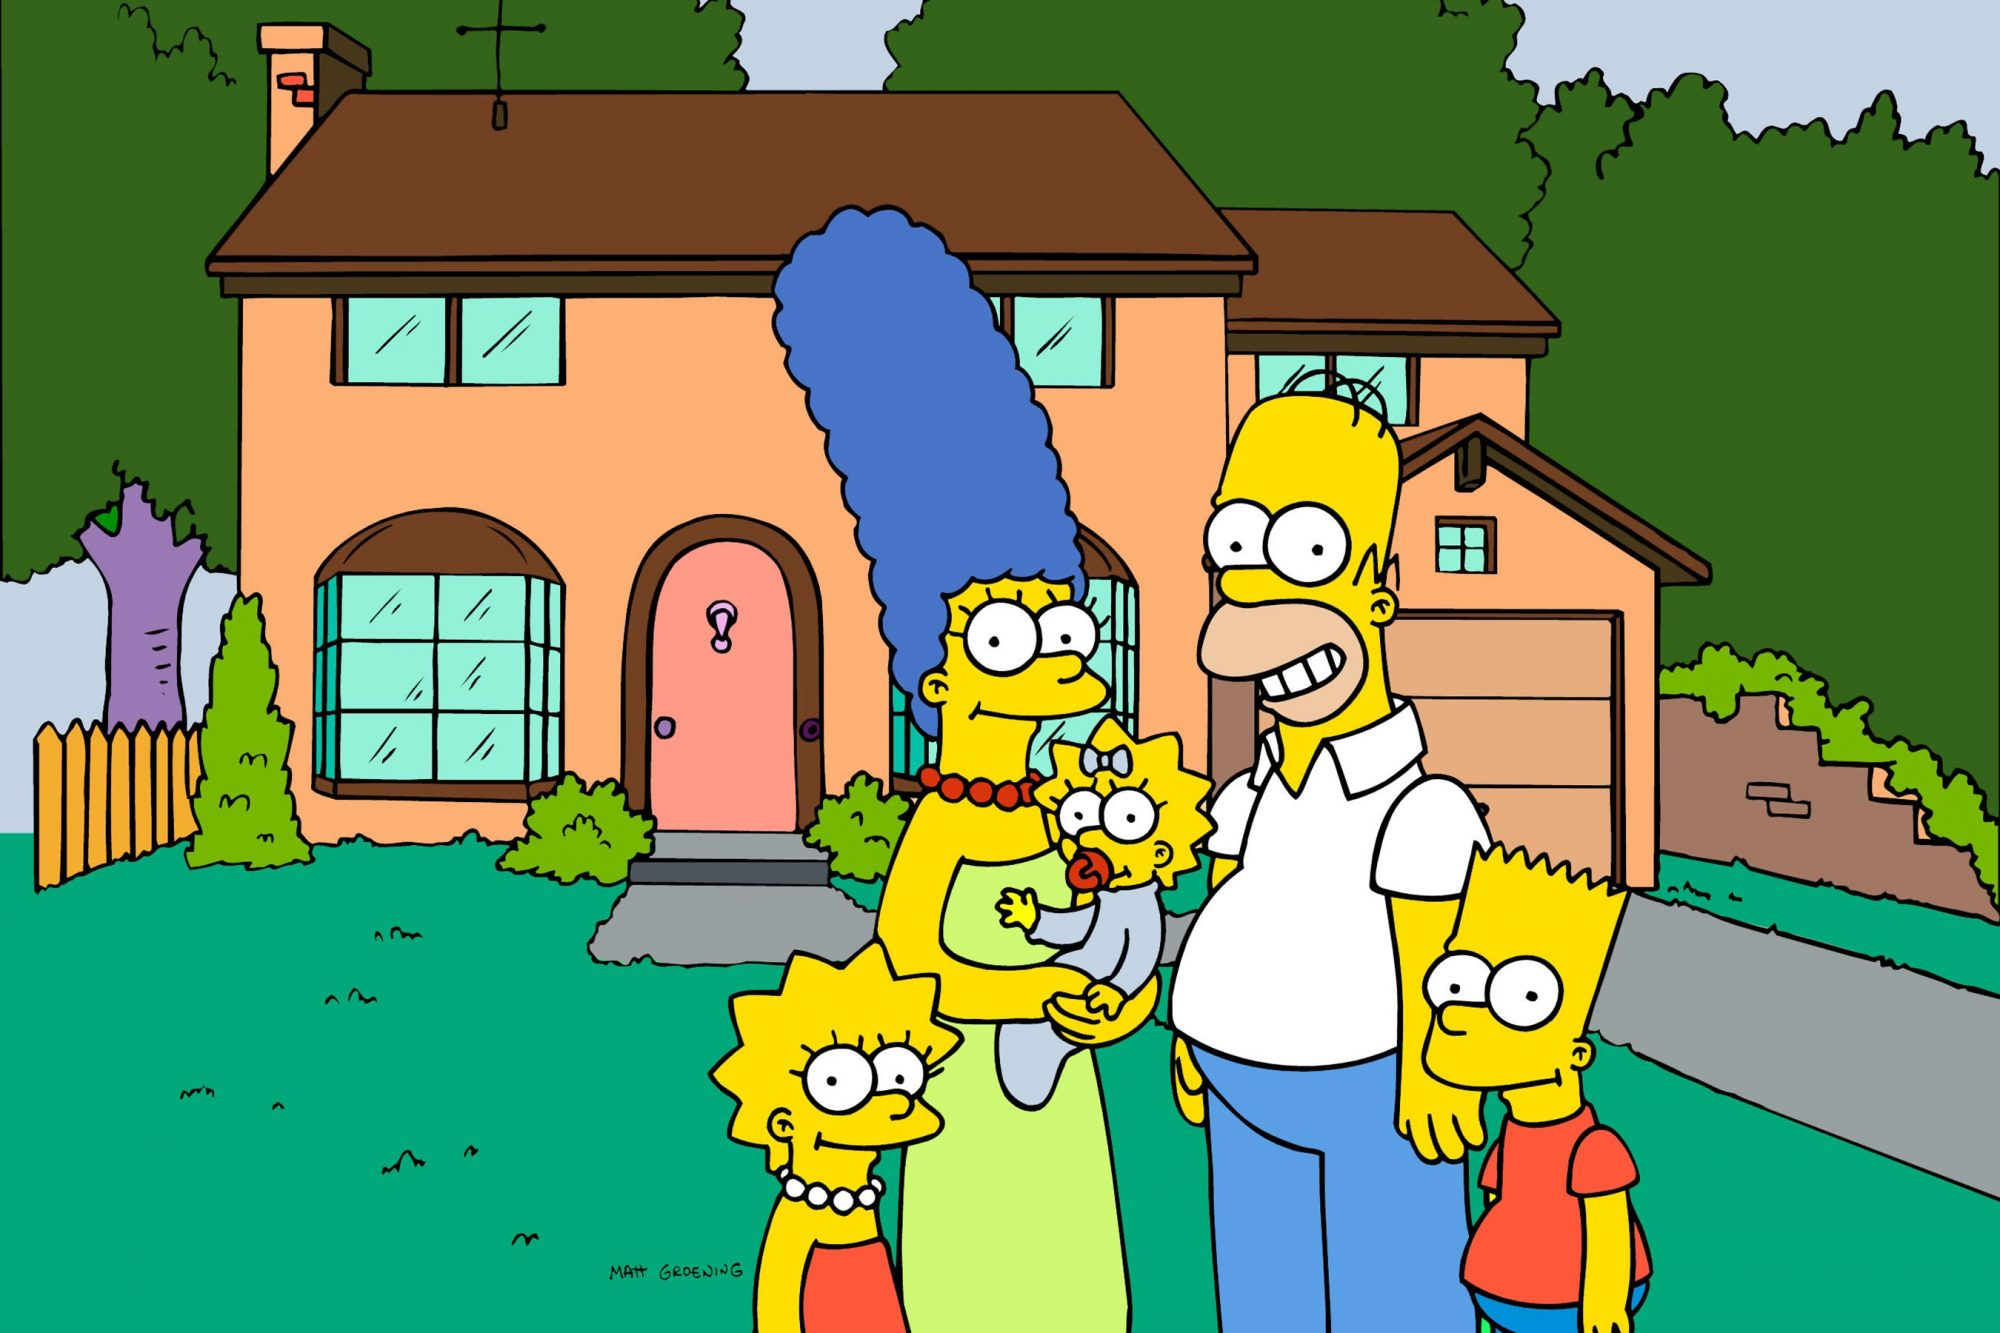 Simpsons family gallery with house